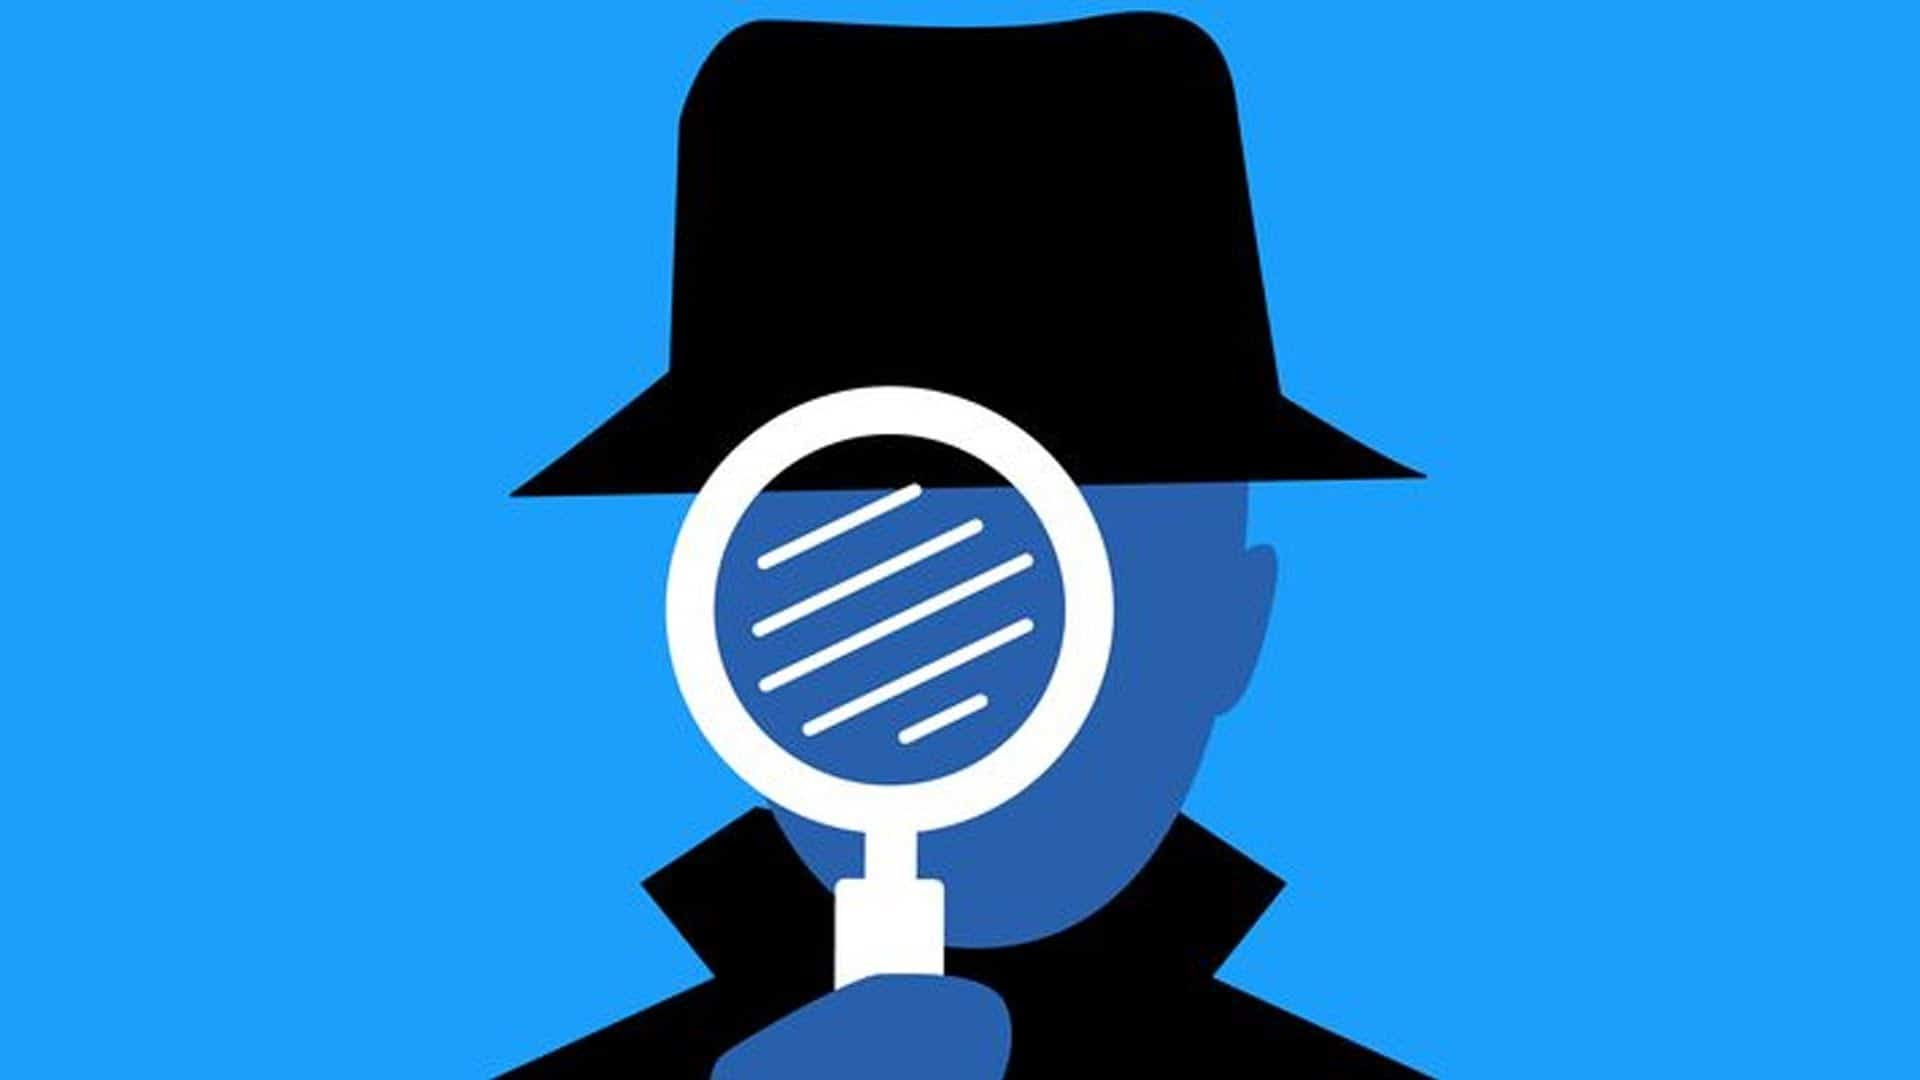 Top 10 iPhone Spy Apps to Monitor iPhone Securely